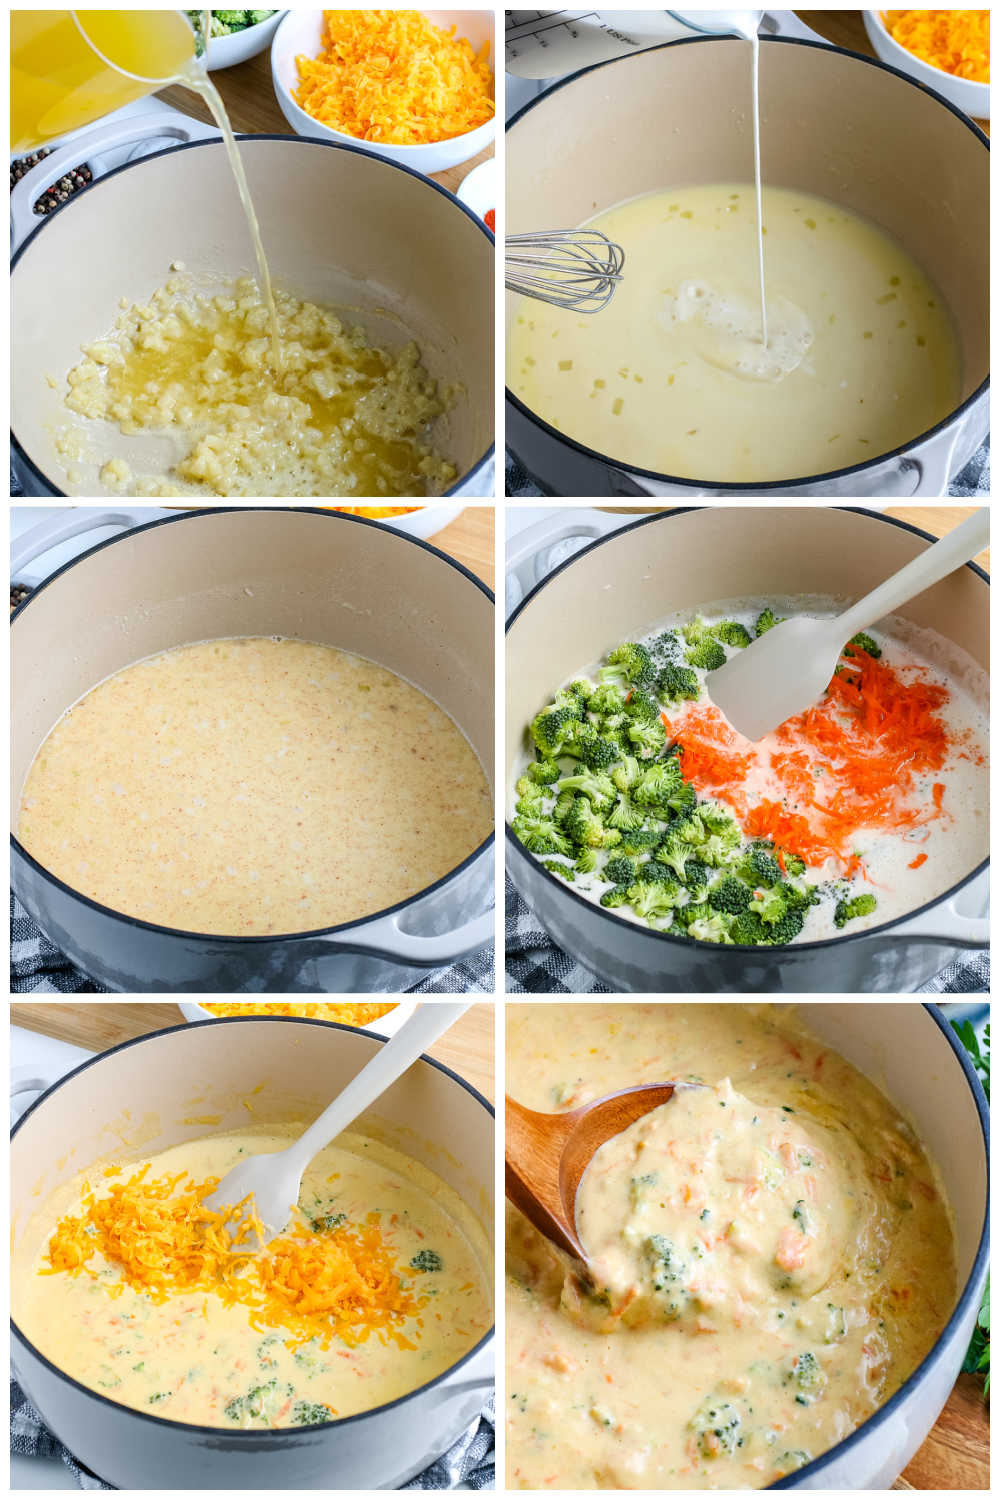 A picture collage of how to make this Broccoli Cheddar Soup recipe.